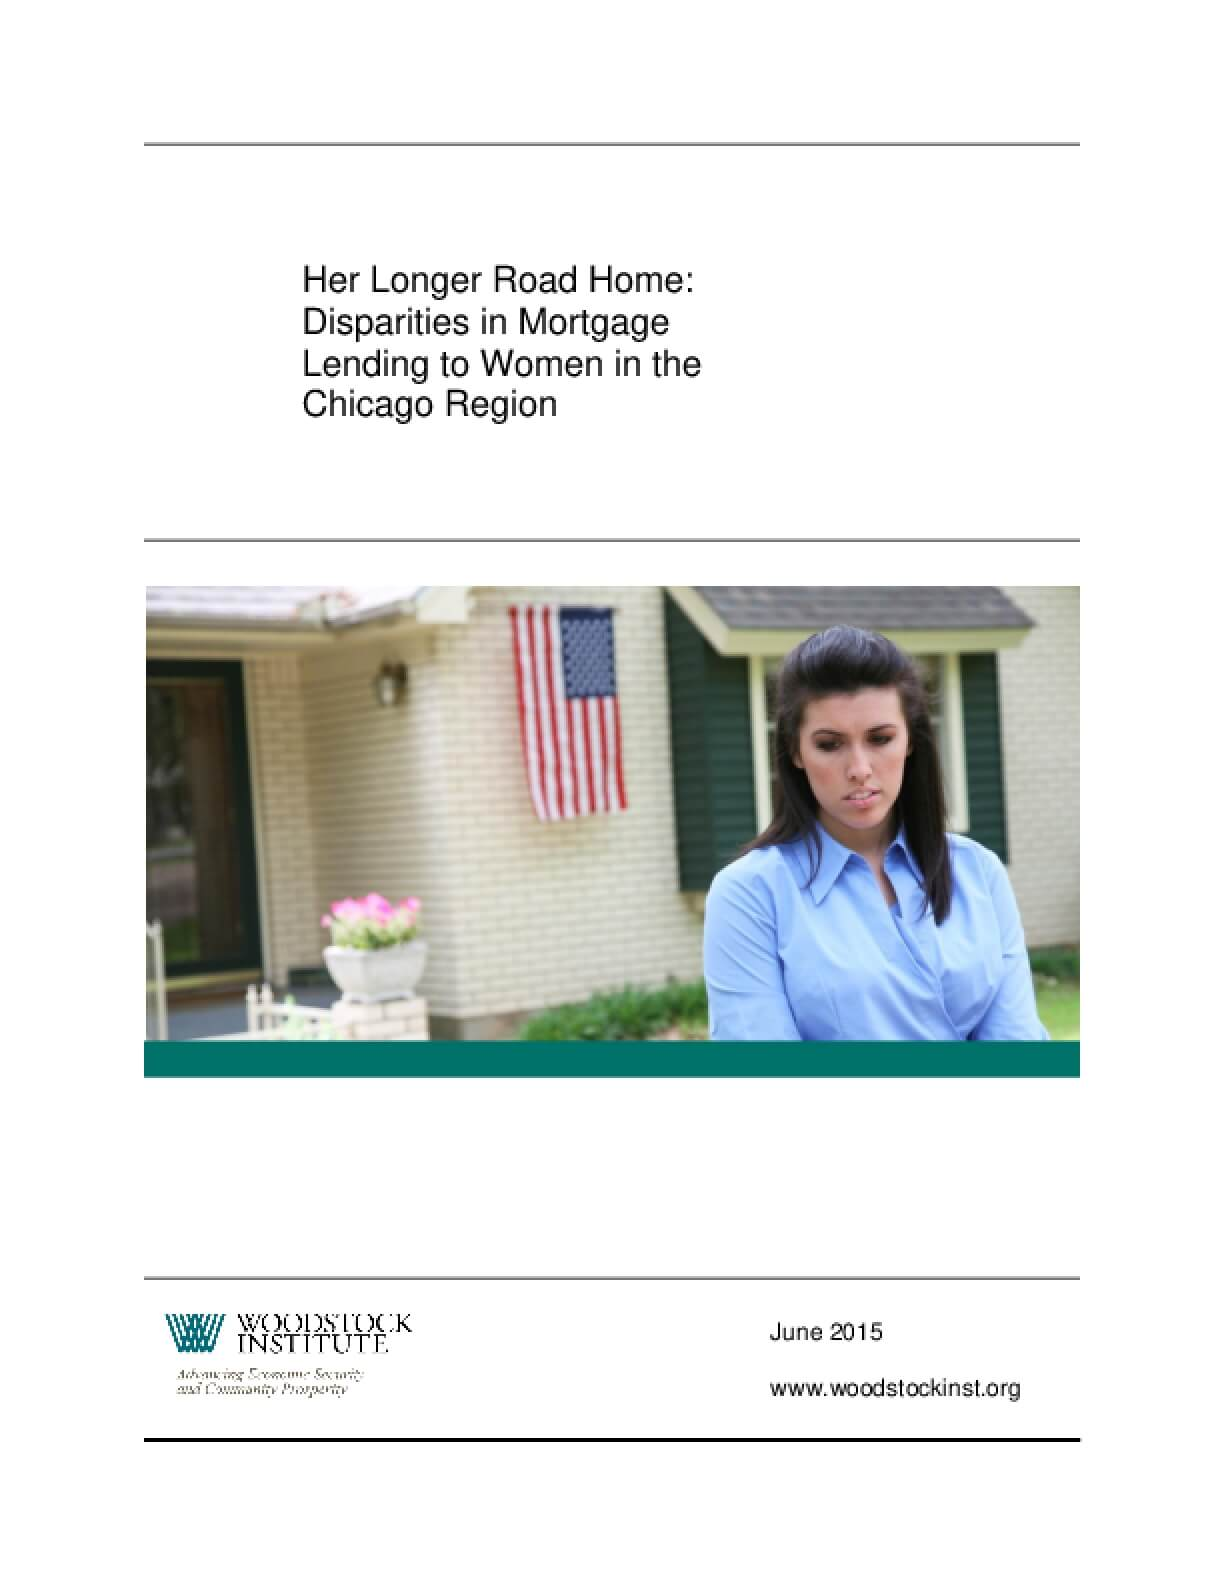 Her Longer Road Home: Disparities in Mortgage Lending to Women in the Chicago Region